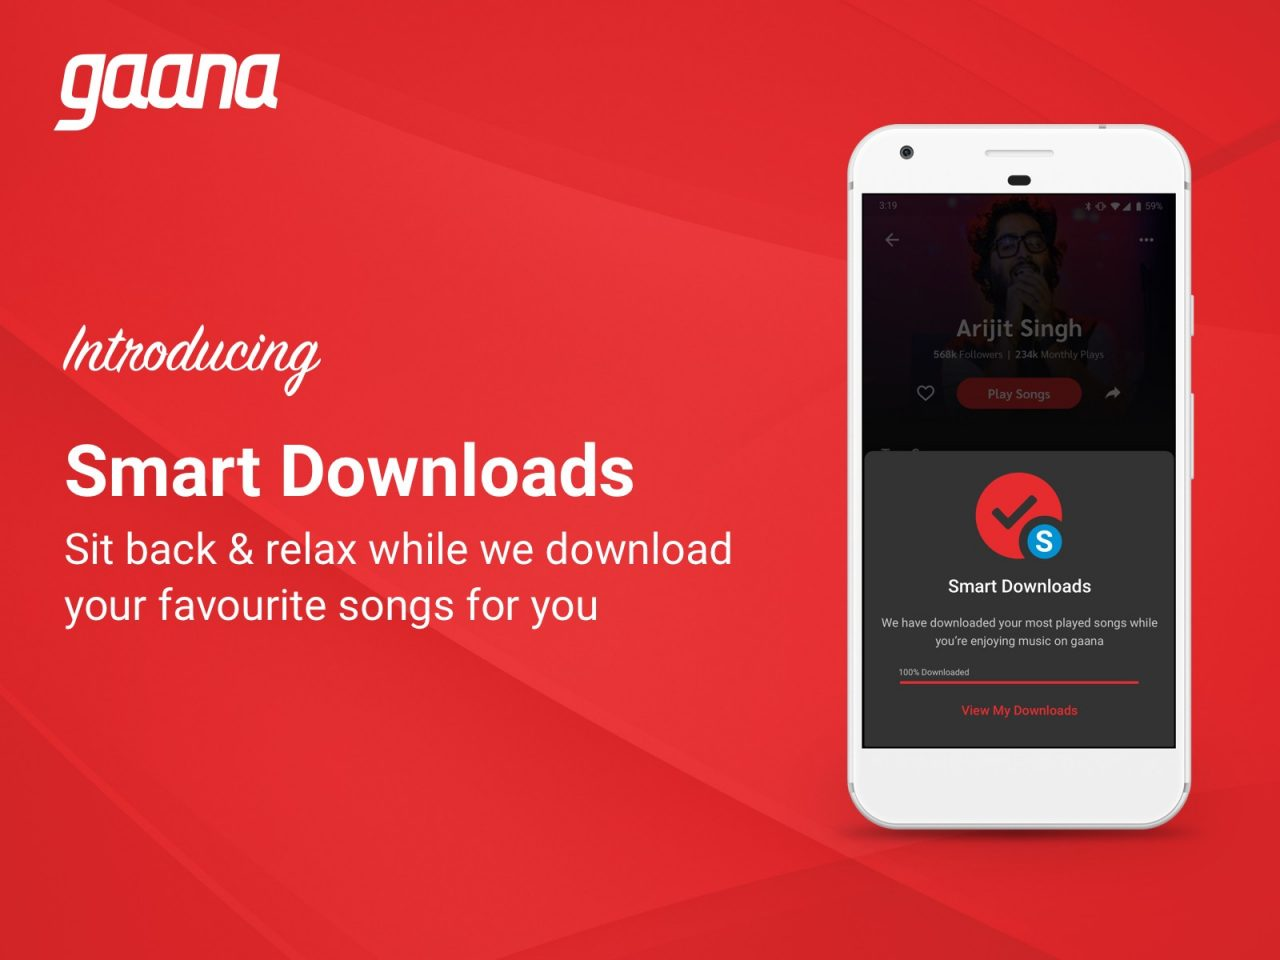 Gaana adds feature to download the songs you love for you